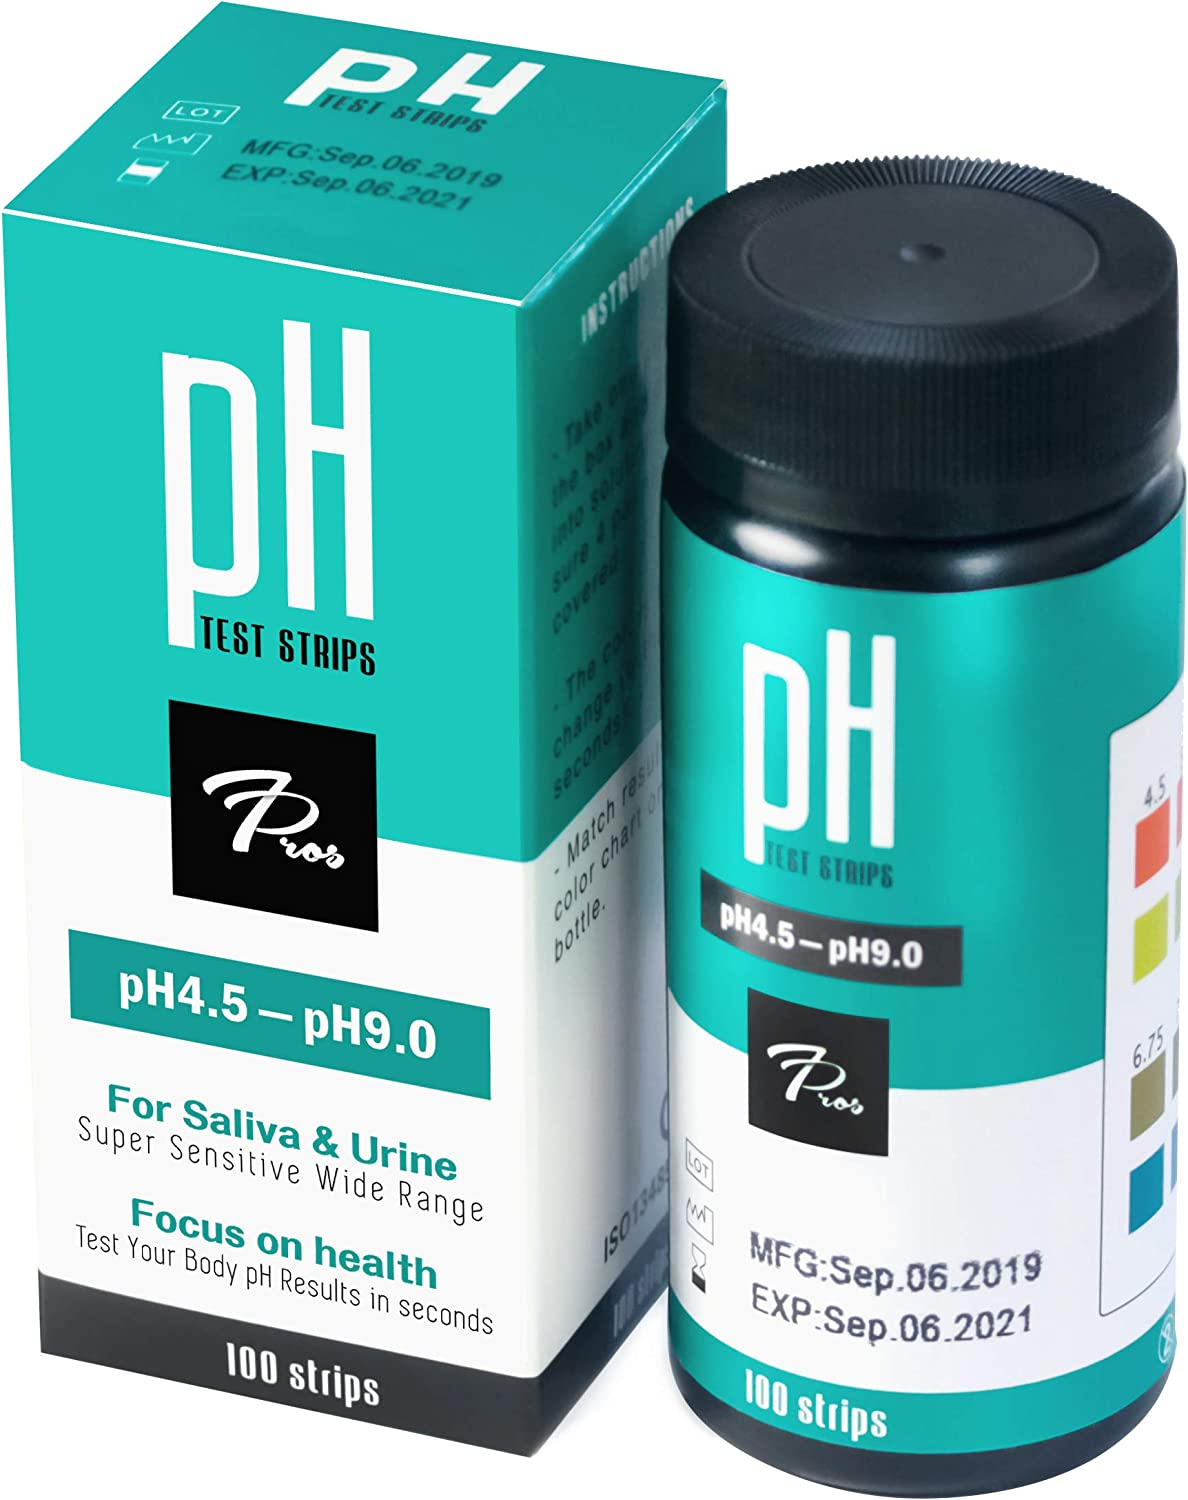 pH Test Strips for Urine & Saliva, 7Pros Accurate Urinalysis Reagent Test Strips for Body pH Testing. Food and Diet pH Monitoring; Know Your Body Acidity and Alkalinity